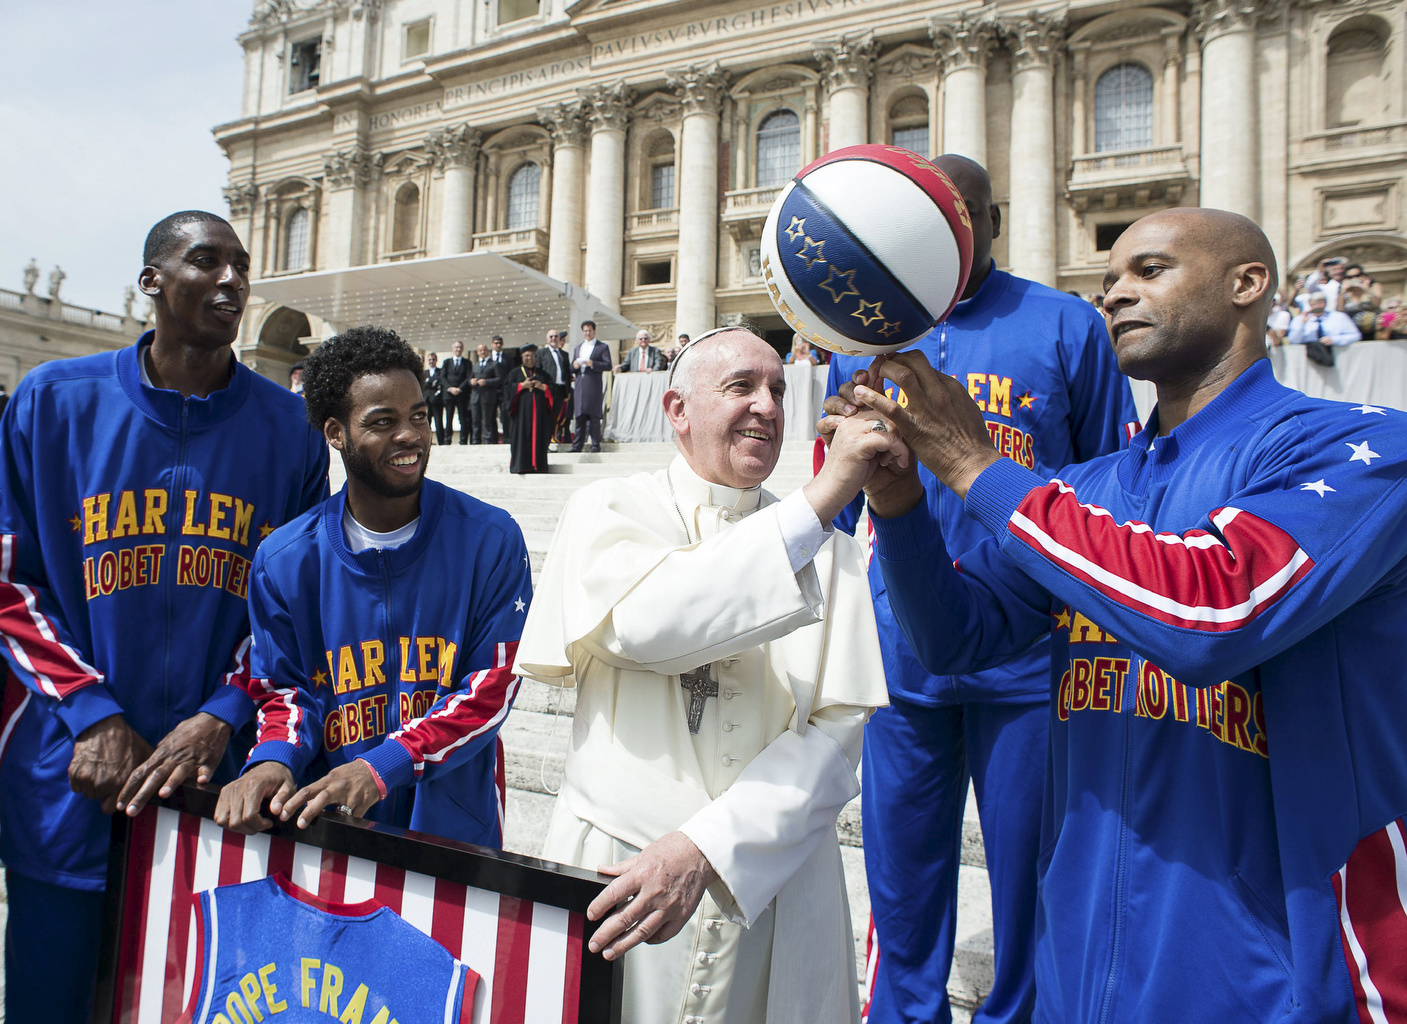 Pope Francis smiles as he plays with a basketball next to members of the Harlem Globetrotters basketball at Vatican